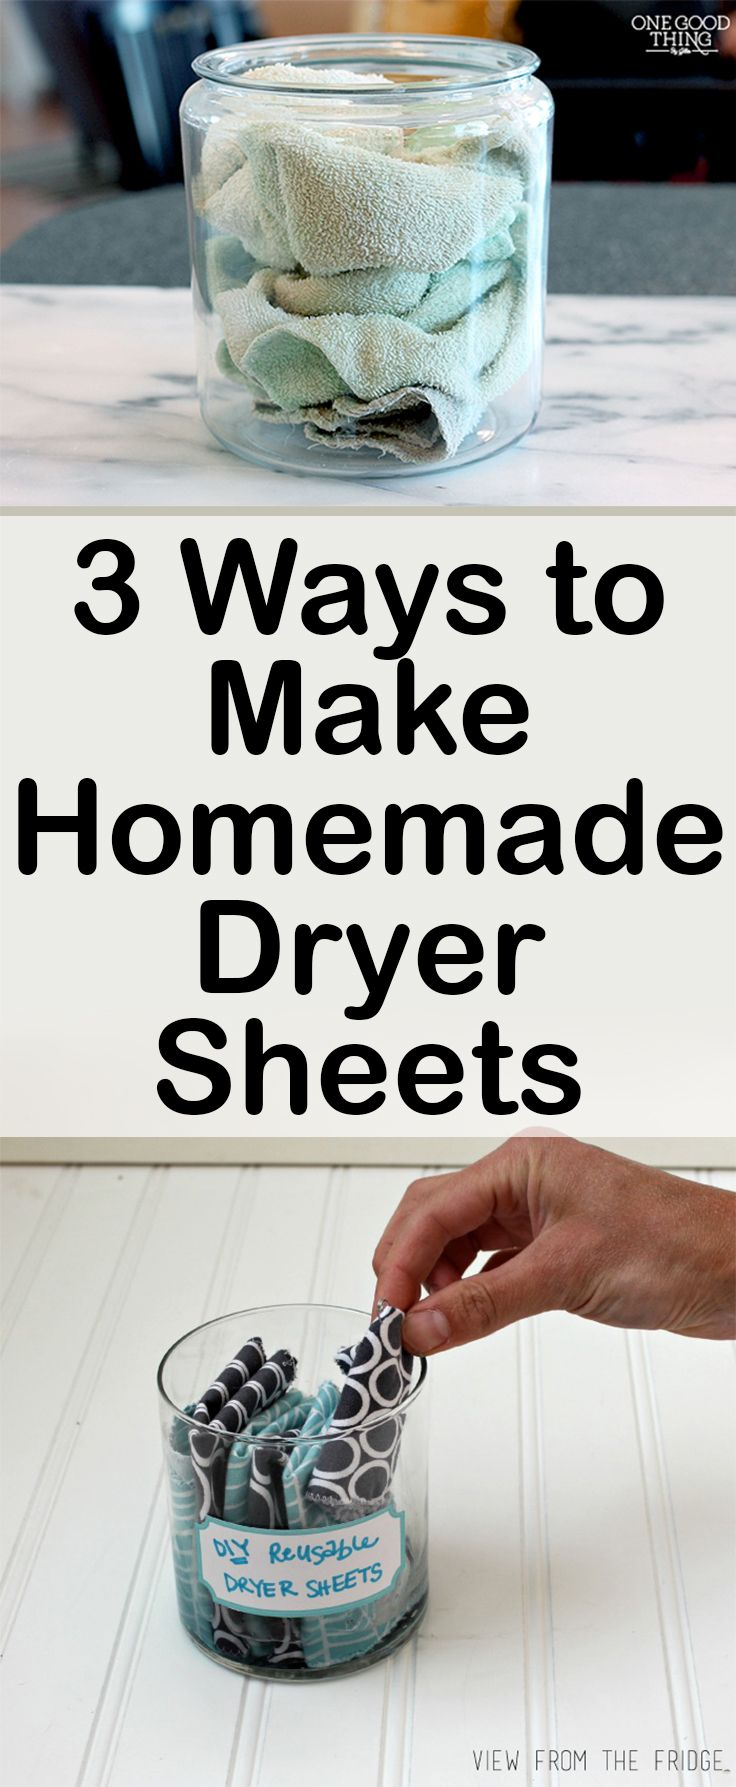 3 Ways to Make Homemade Dryer Sheets